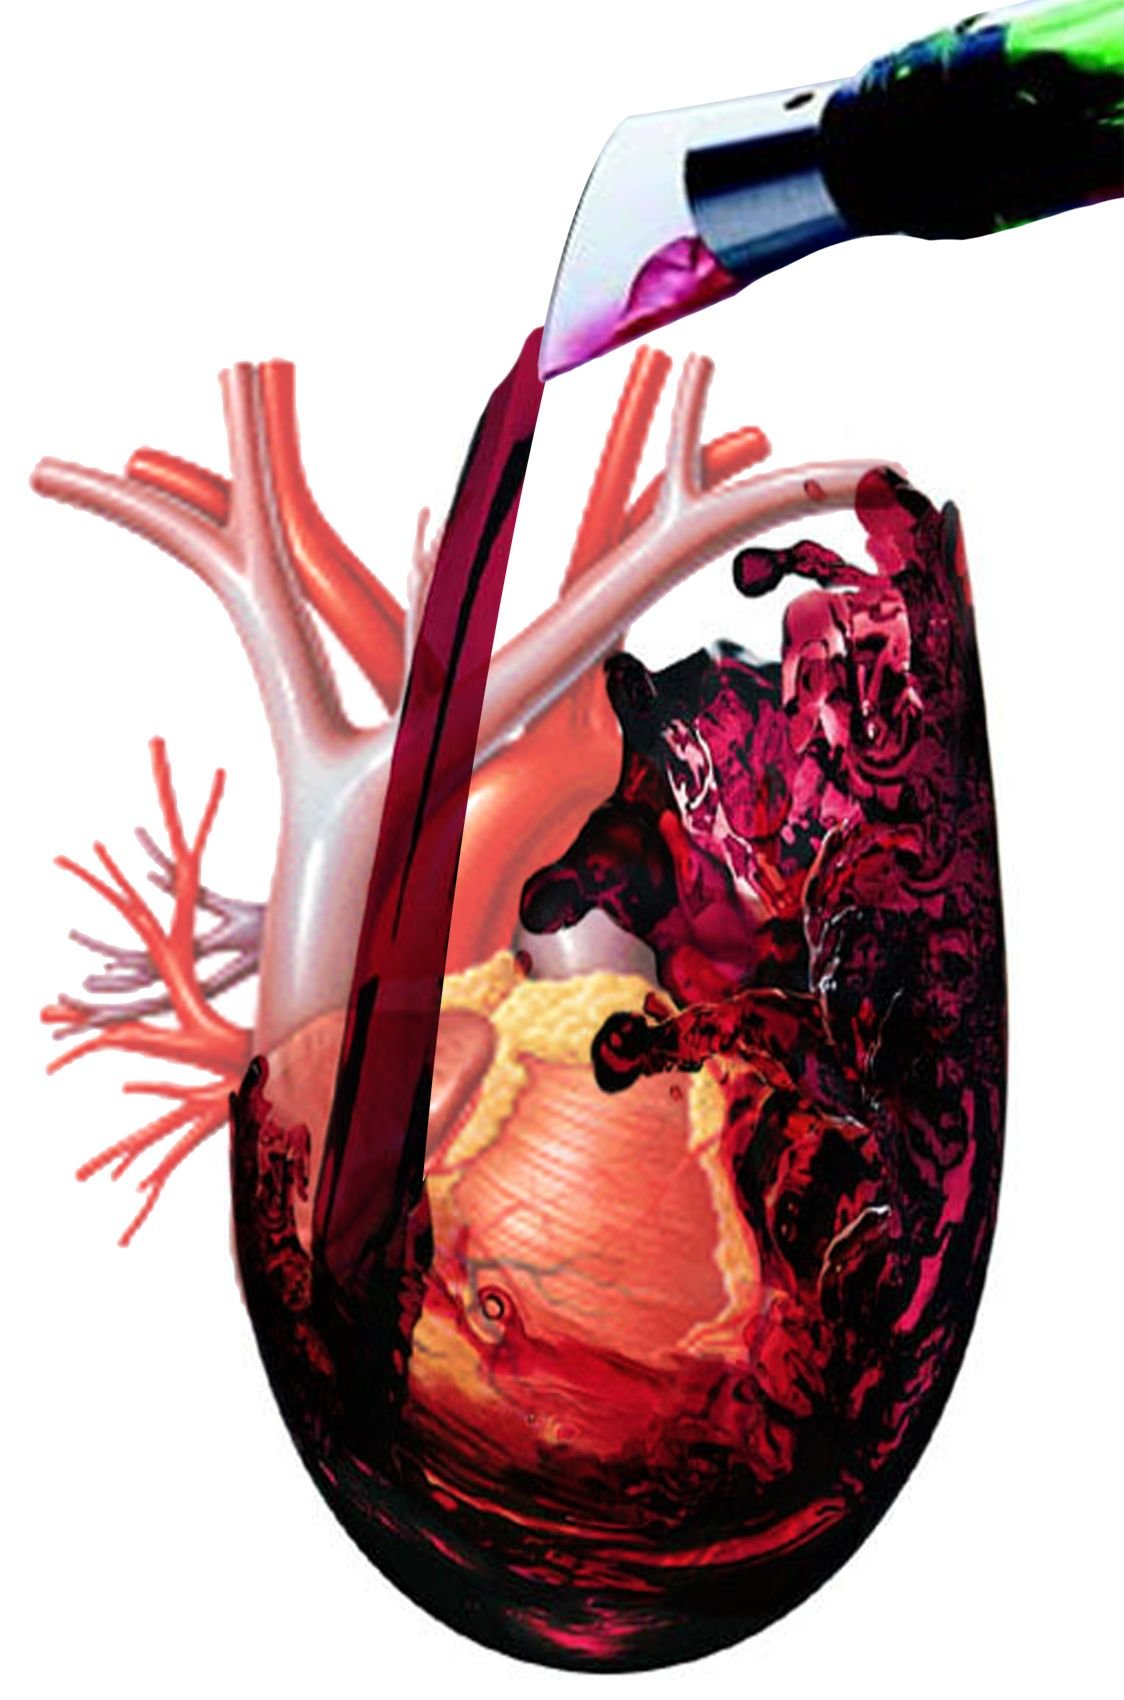 Pin En Health Benefits Of Red Wine Does Red Wine Protect Against Heart Disease